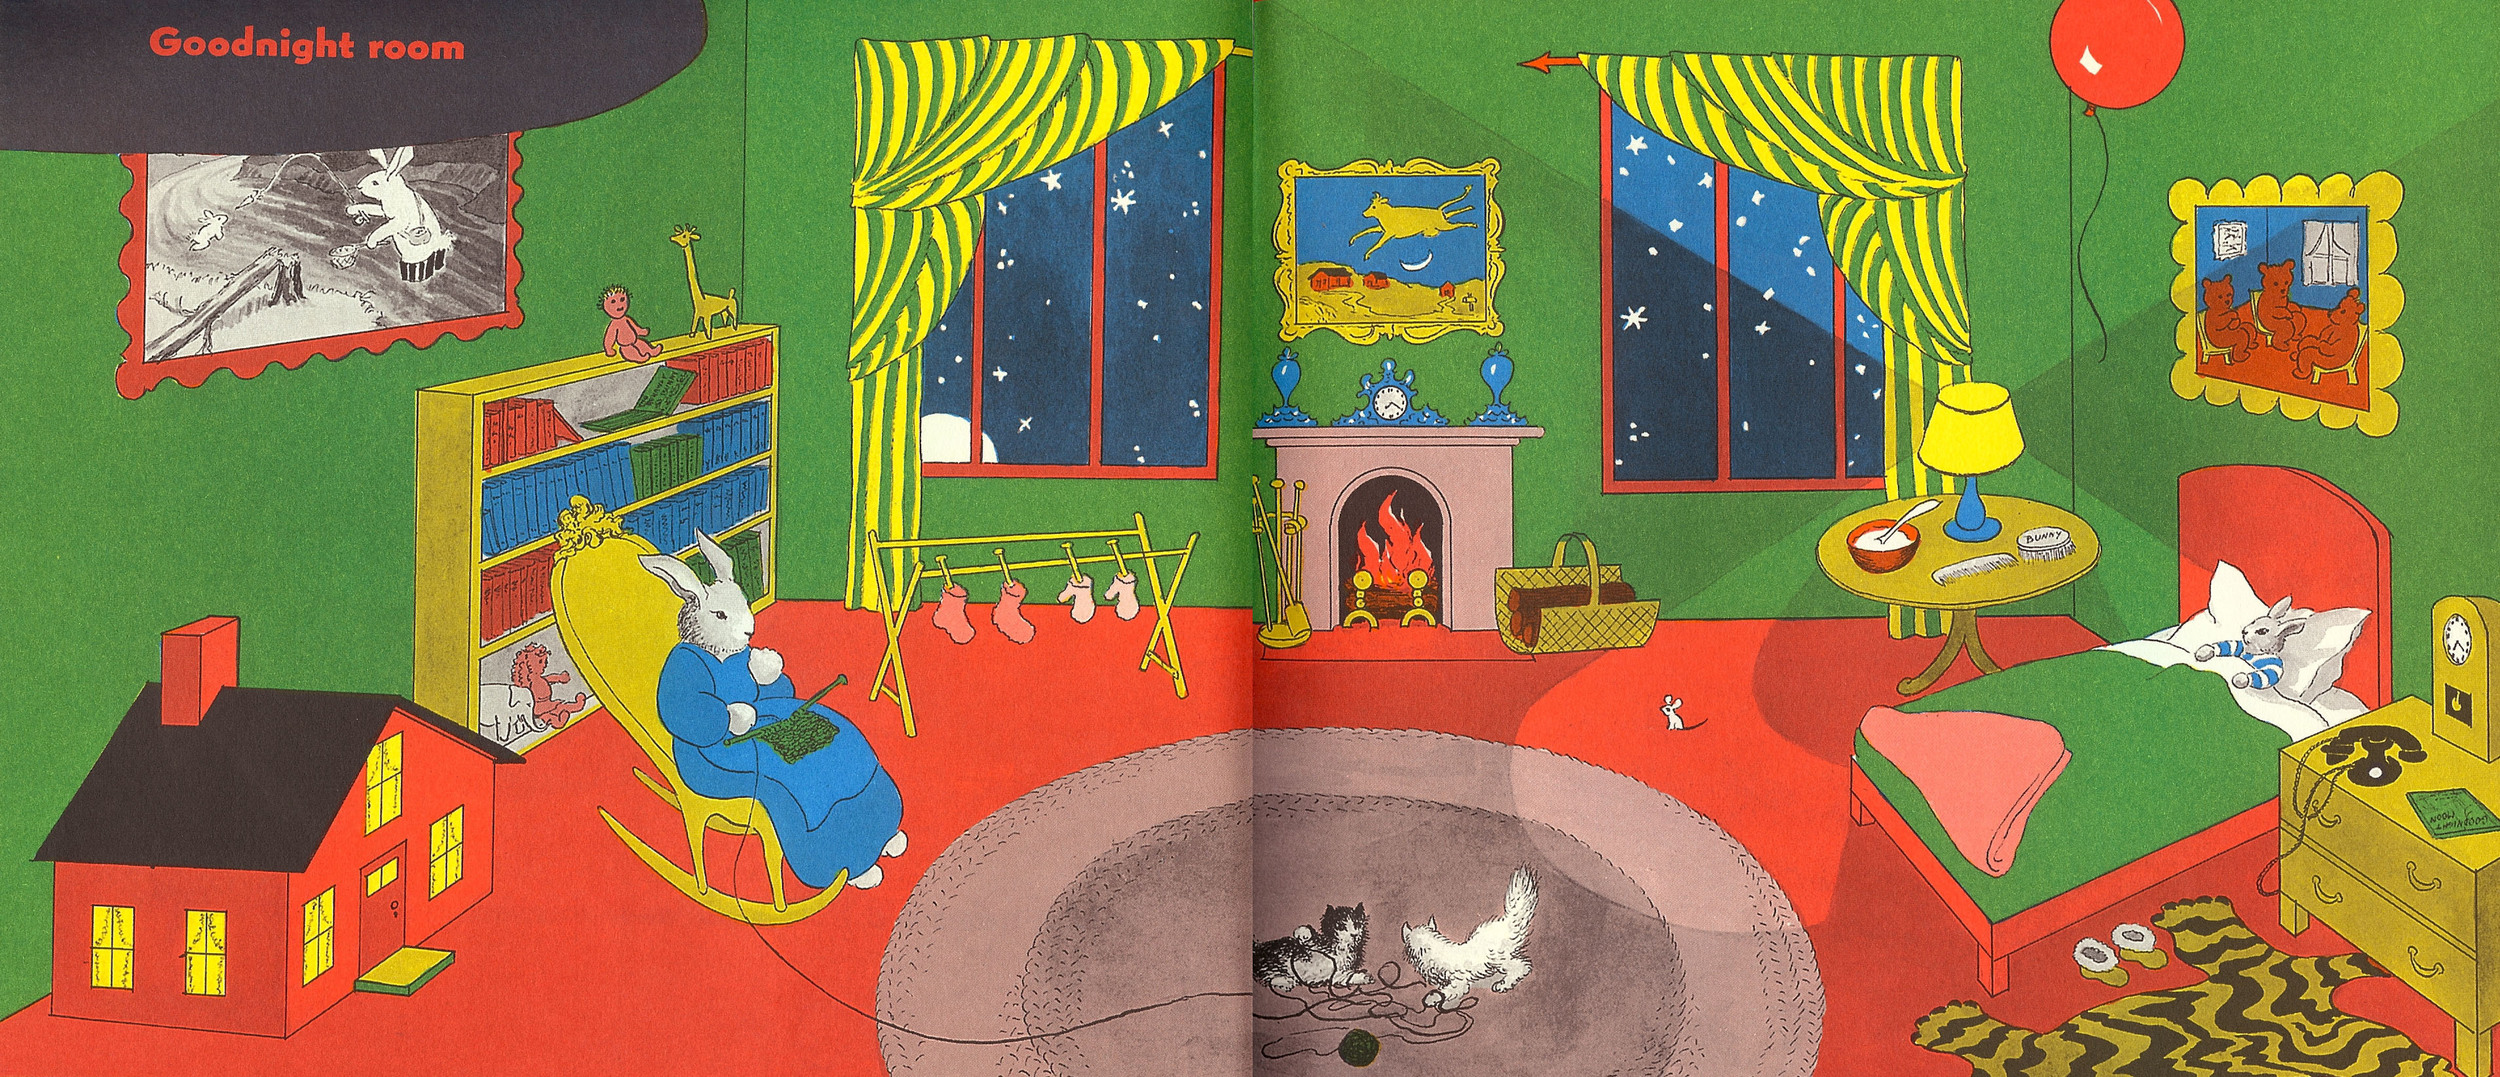 goodnight-moon-two-page.jpg